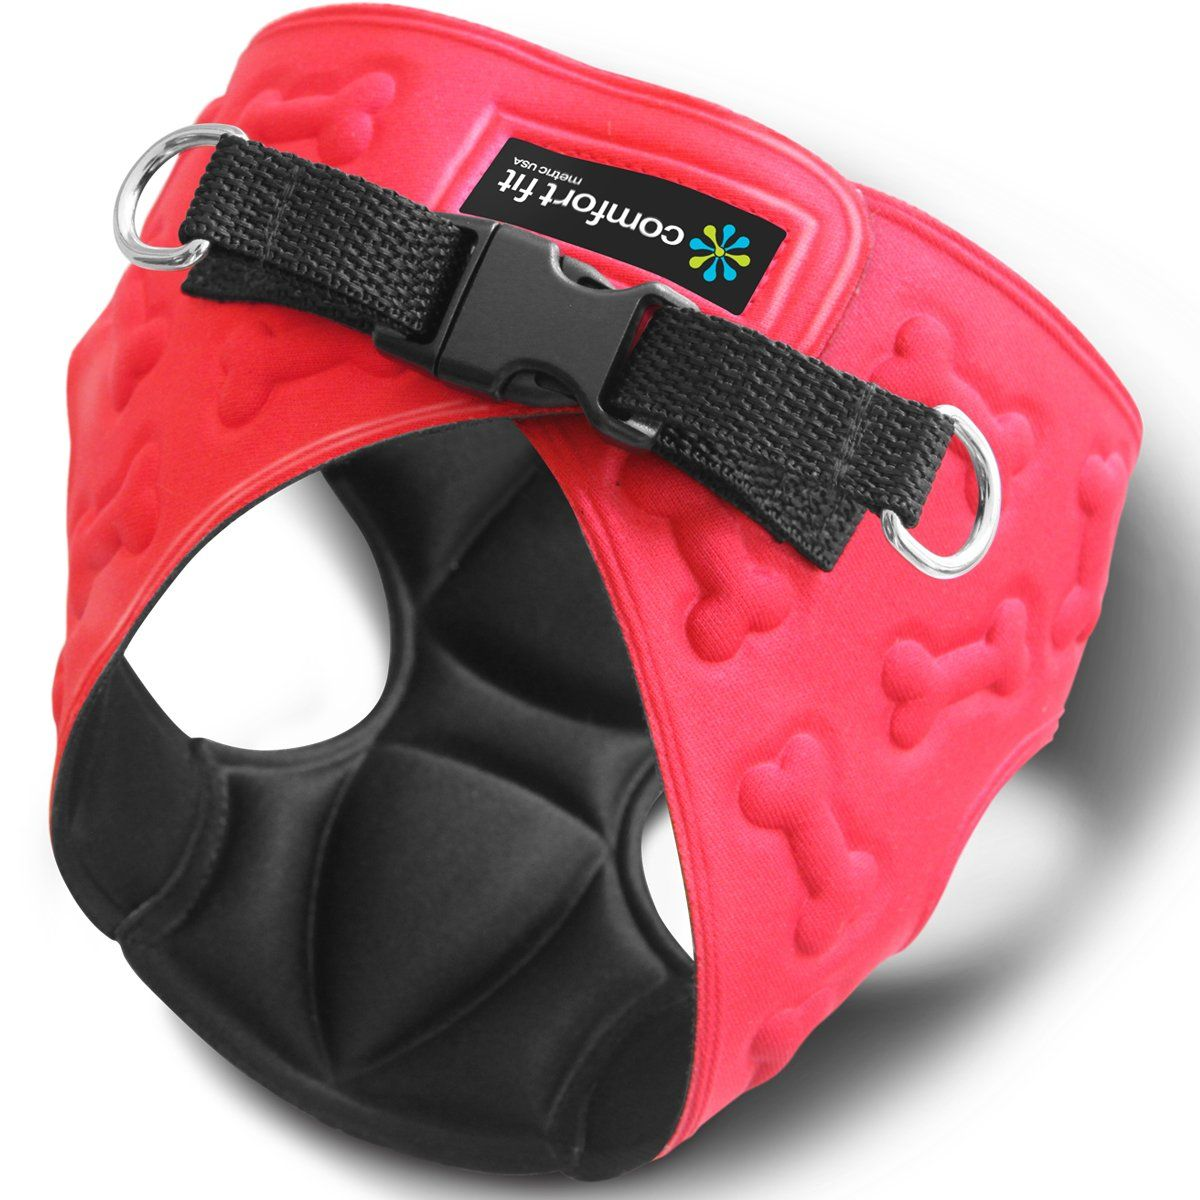 Comfort Fit Metric USA 6.3 x 8.8Inch Dog Harness with